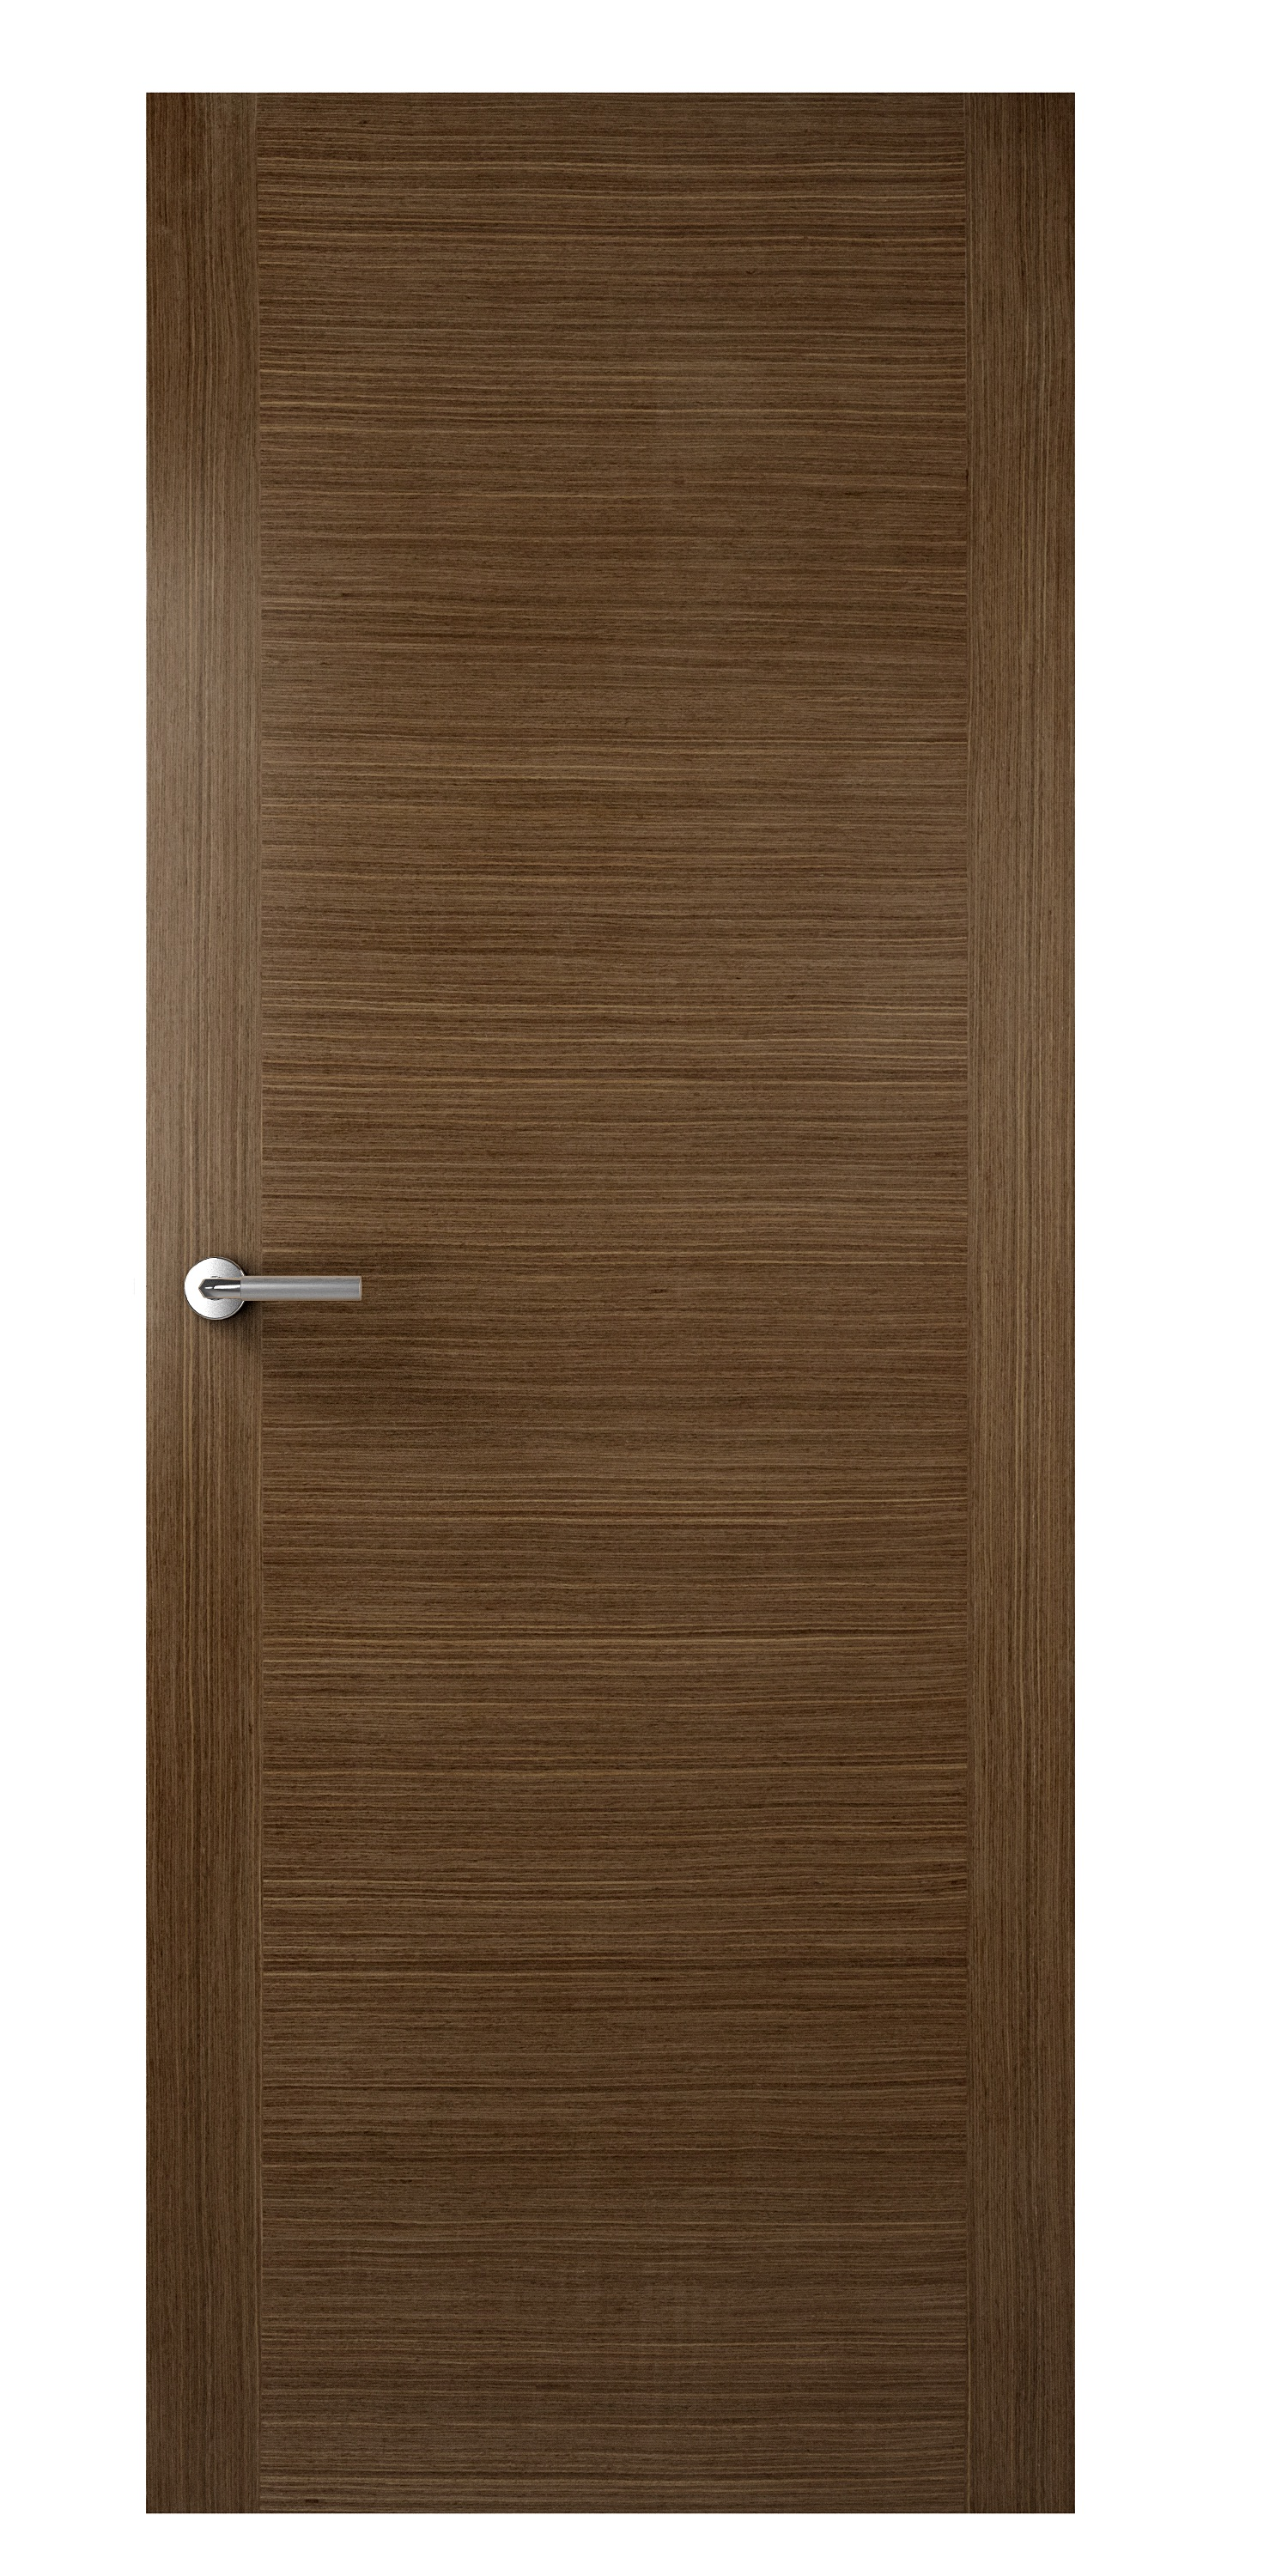 Premdor portfolio walnut two stile doors for Solid core flush door price